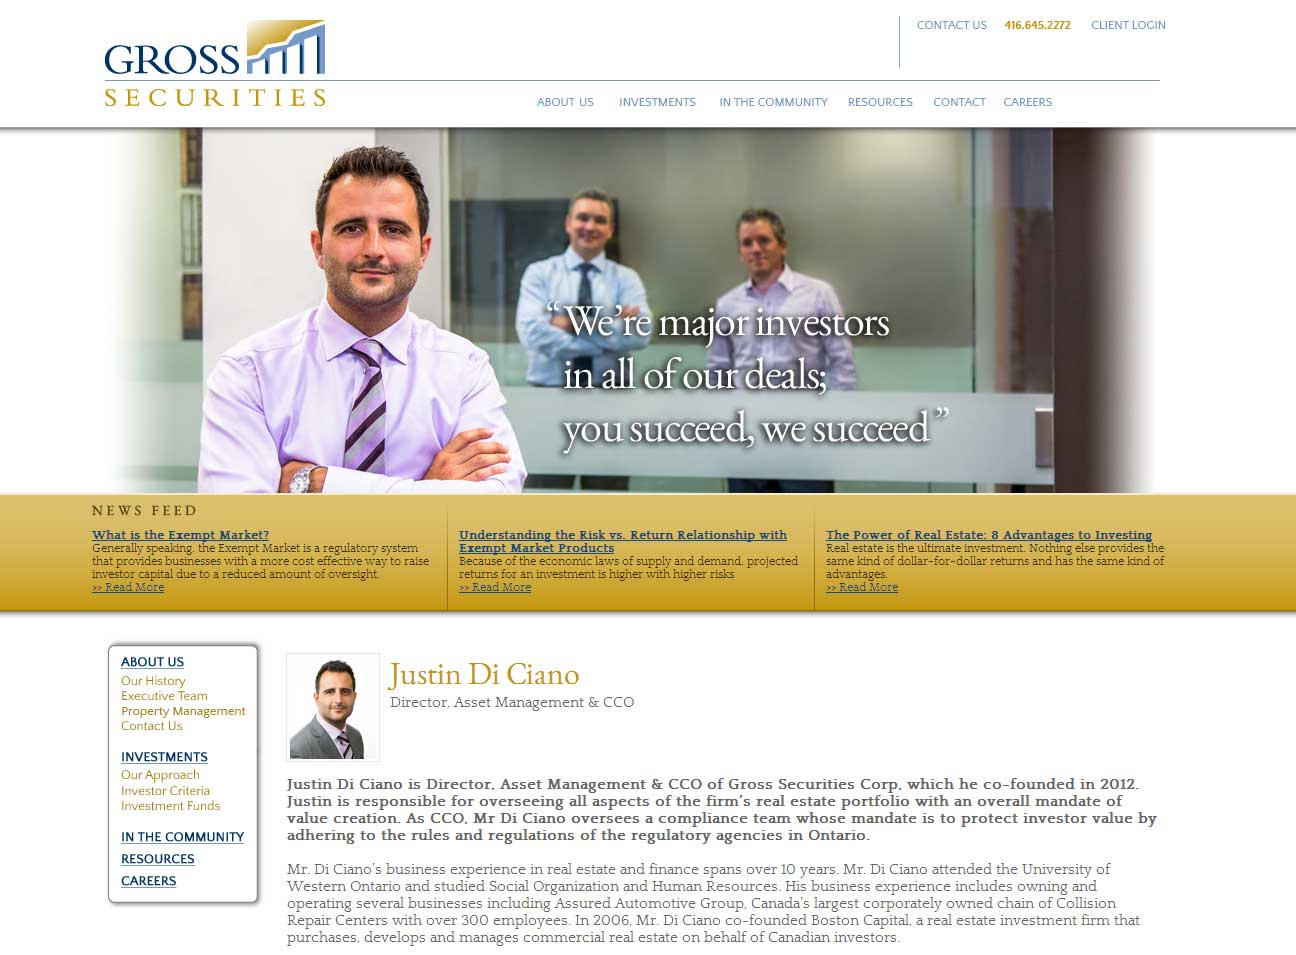 Gross Securities Investment Website